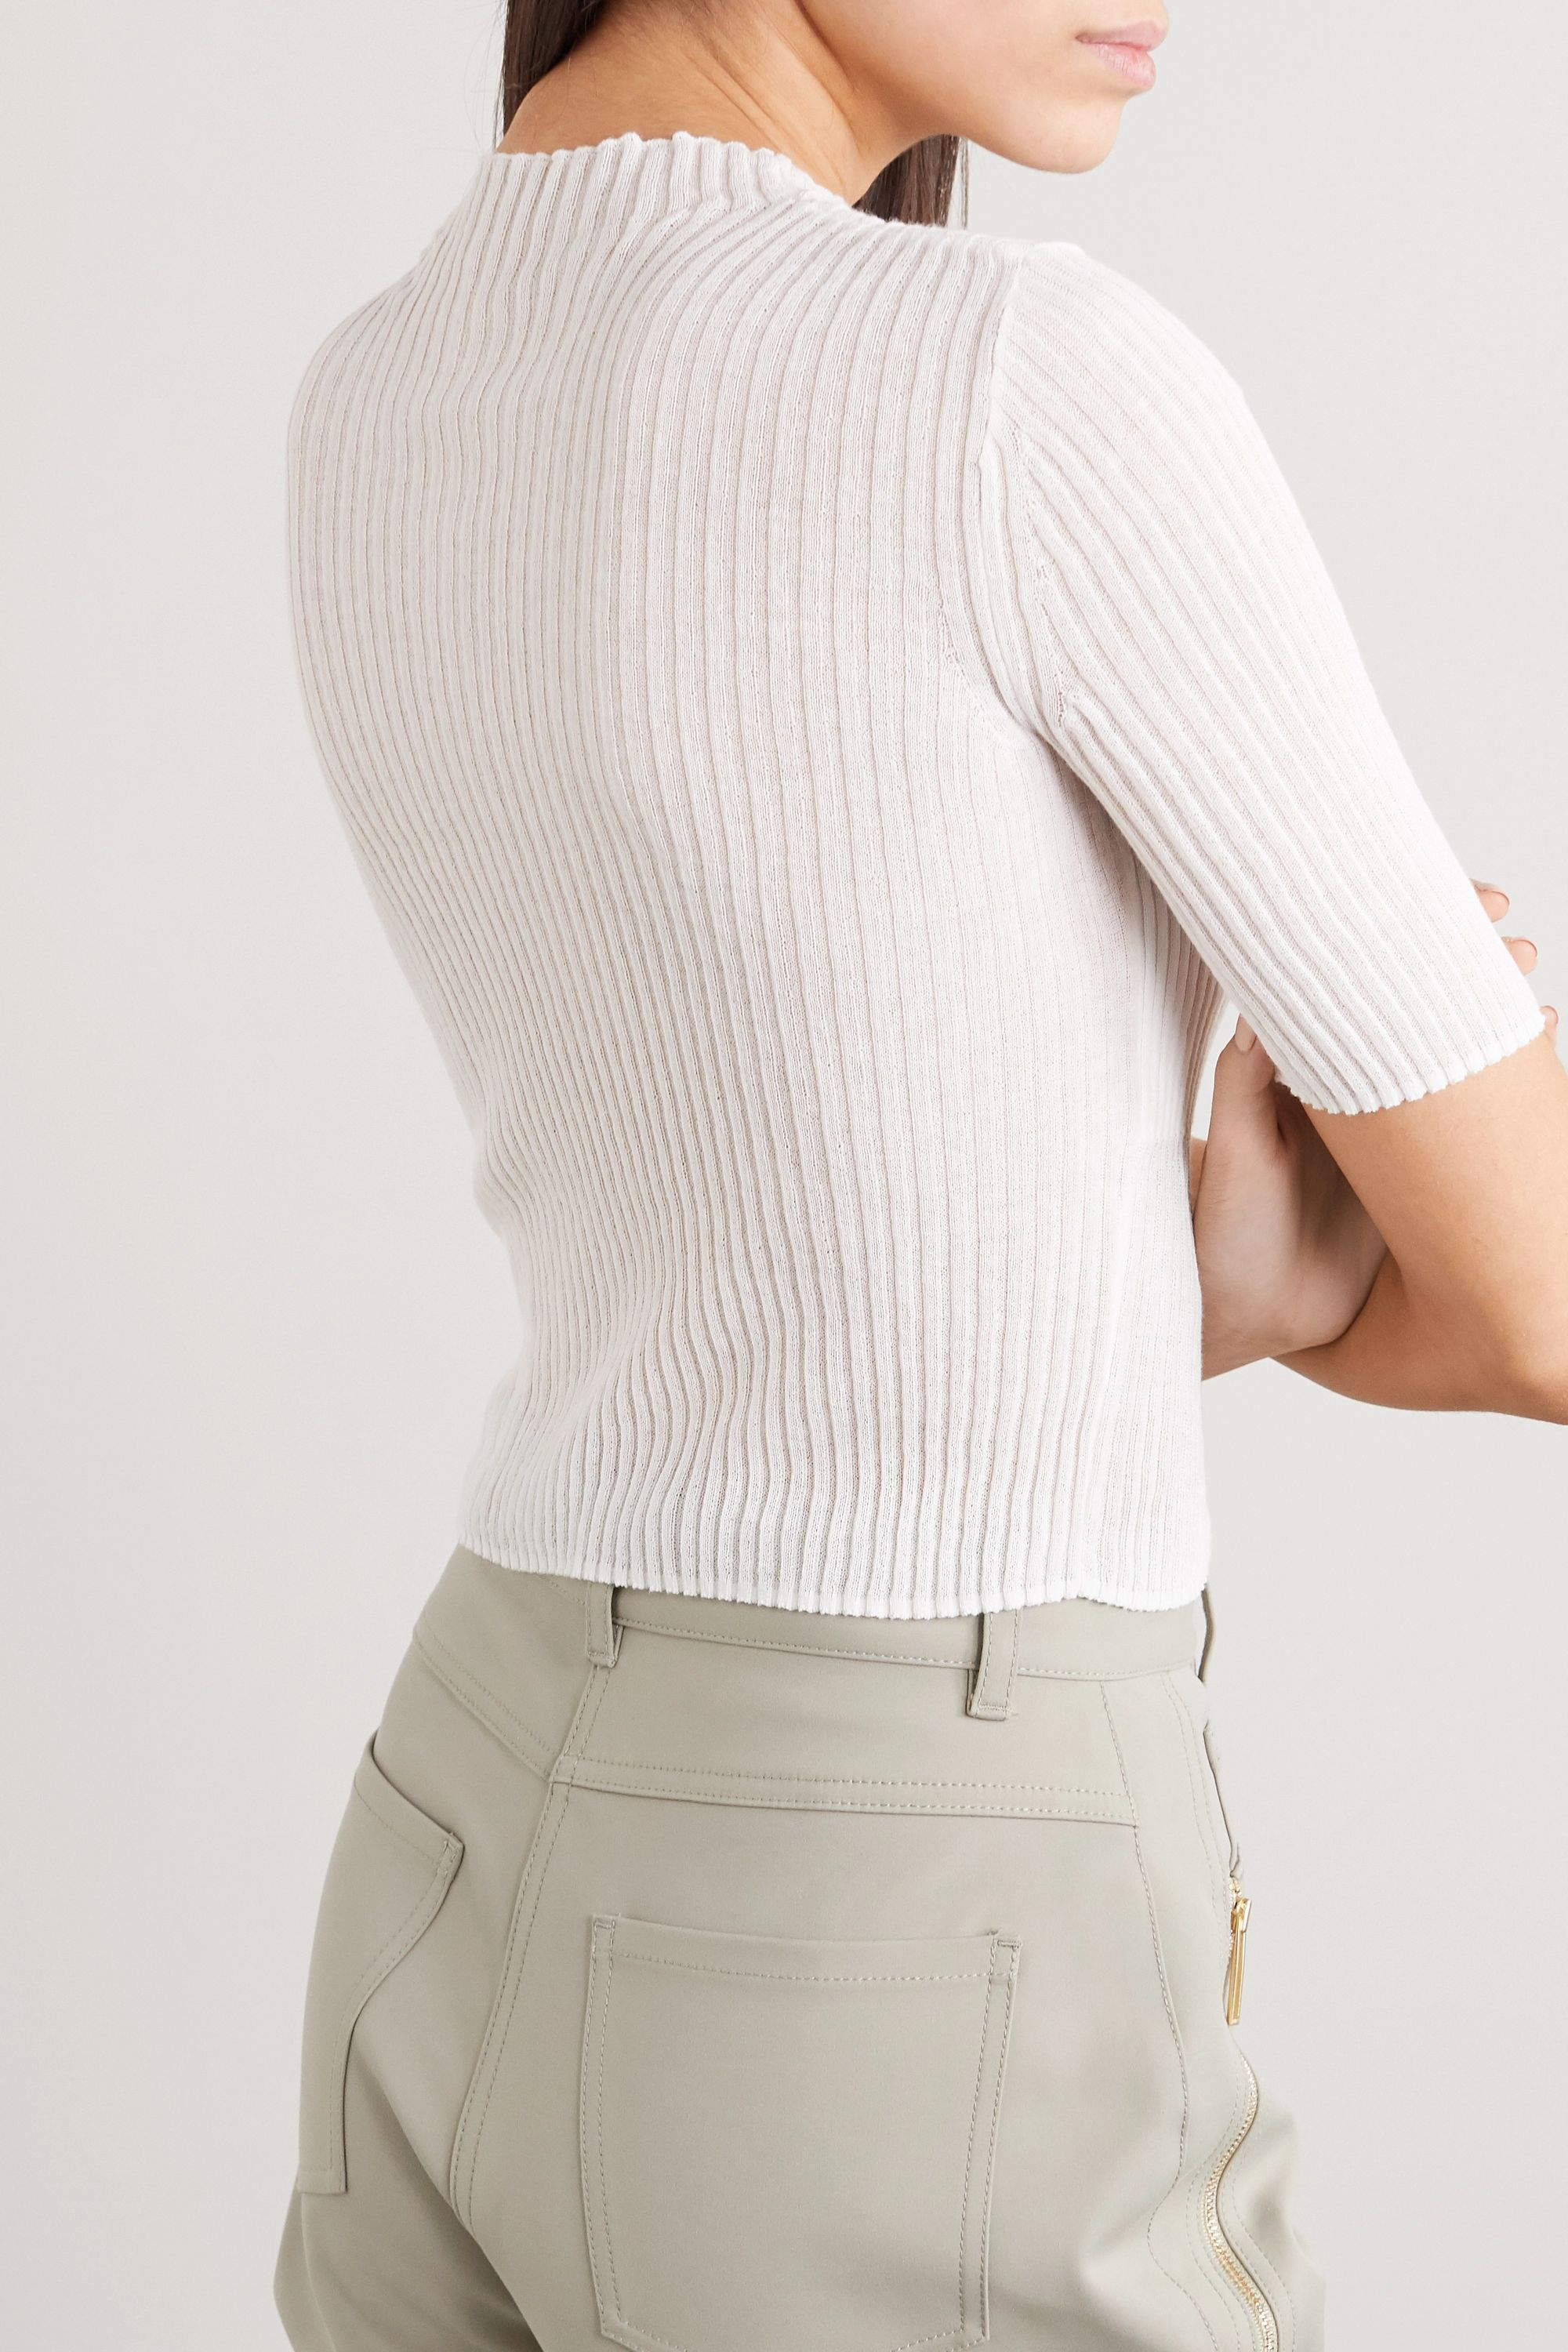 Dion Lee Ribbed cotton-blend sweater